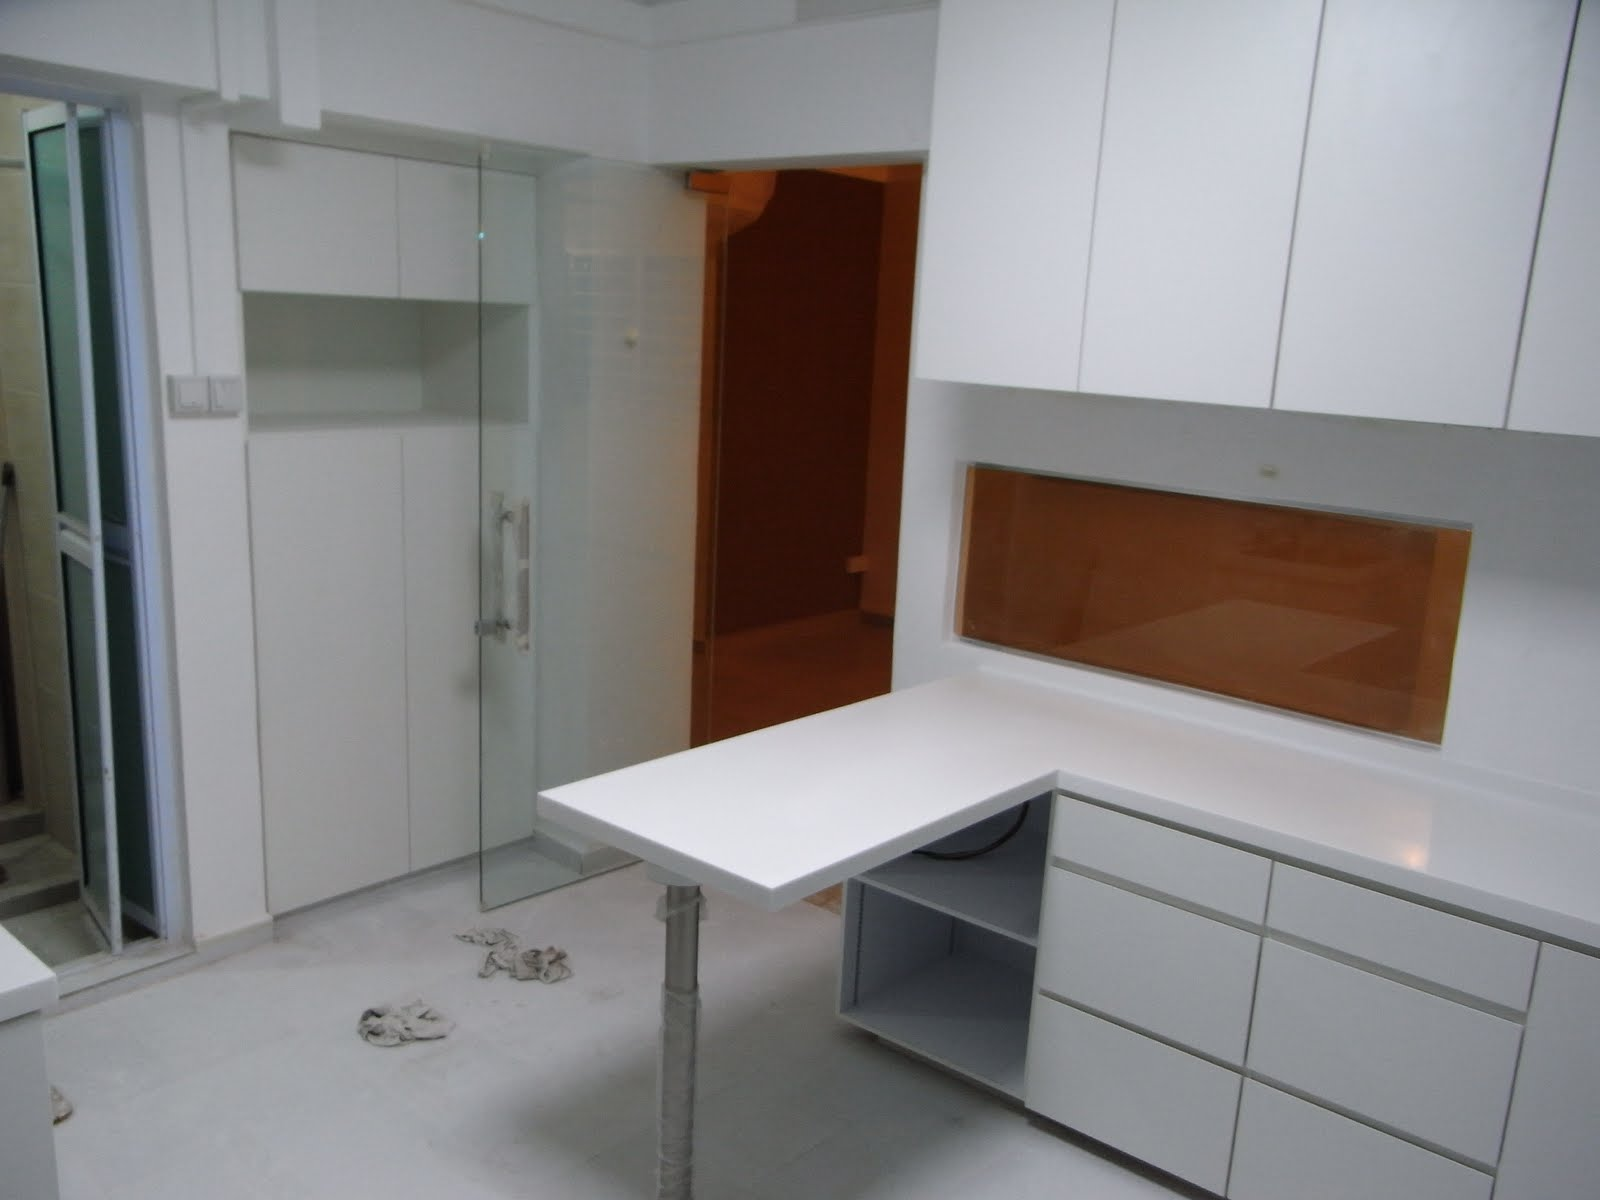 Our hdb flat renovation in 2009 making a long shaped living room feel spacious Kitchen door design hdb